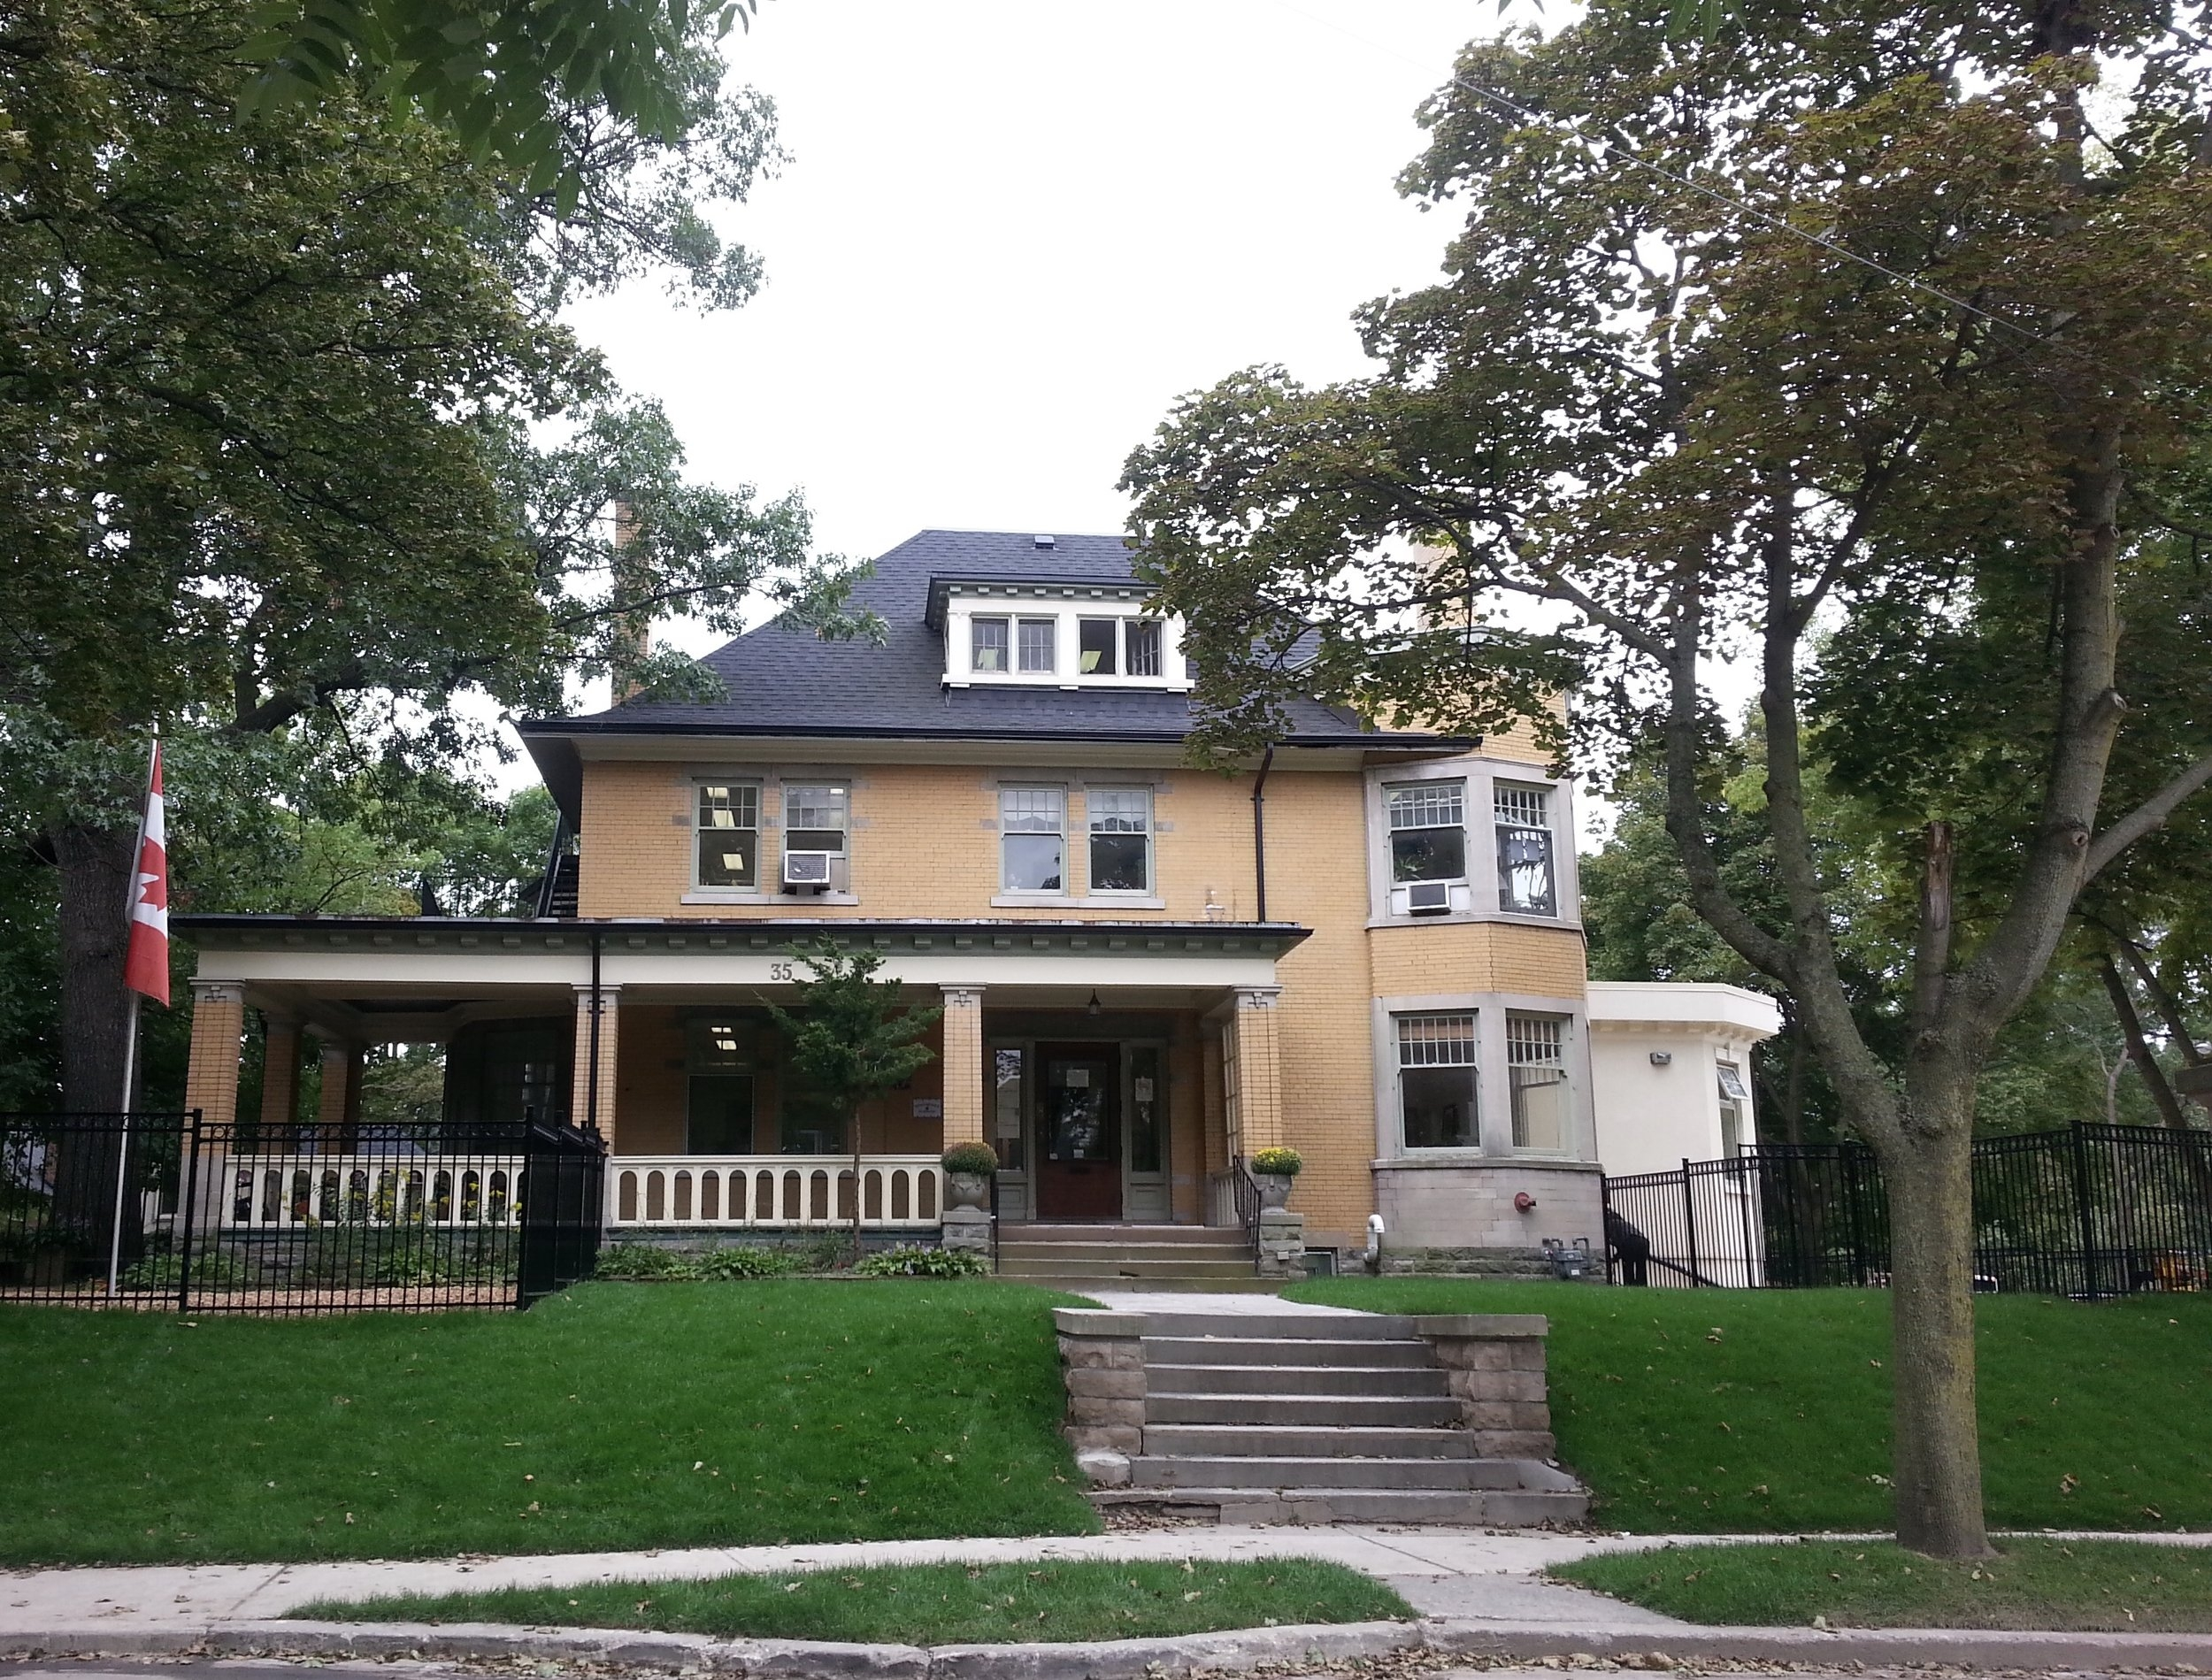 <p><strong>HIGH PARK GARDENS</strong>The Big Yellow House across from High Park.<i><strong>Learn More →</strong></i></p>